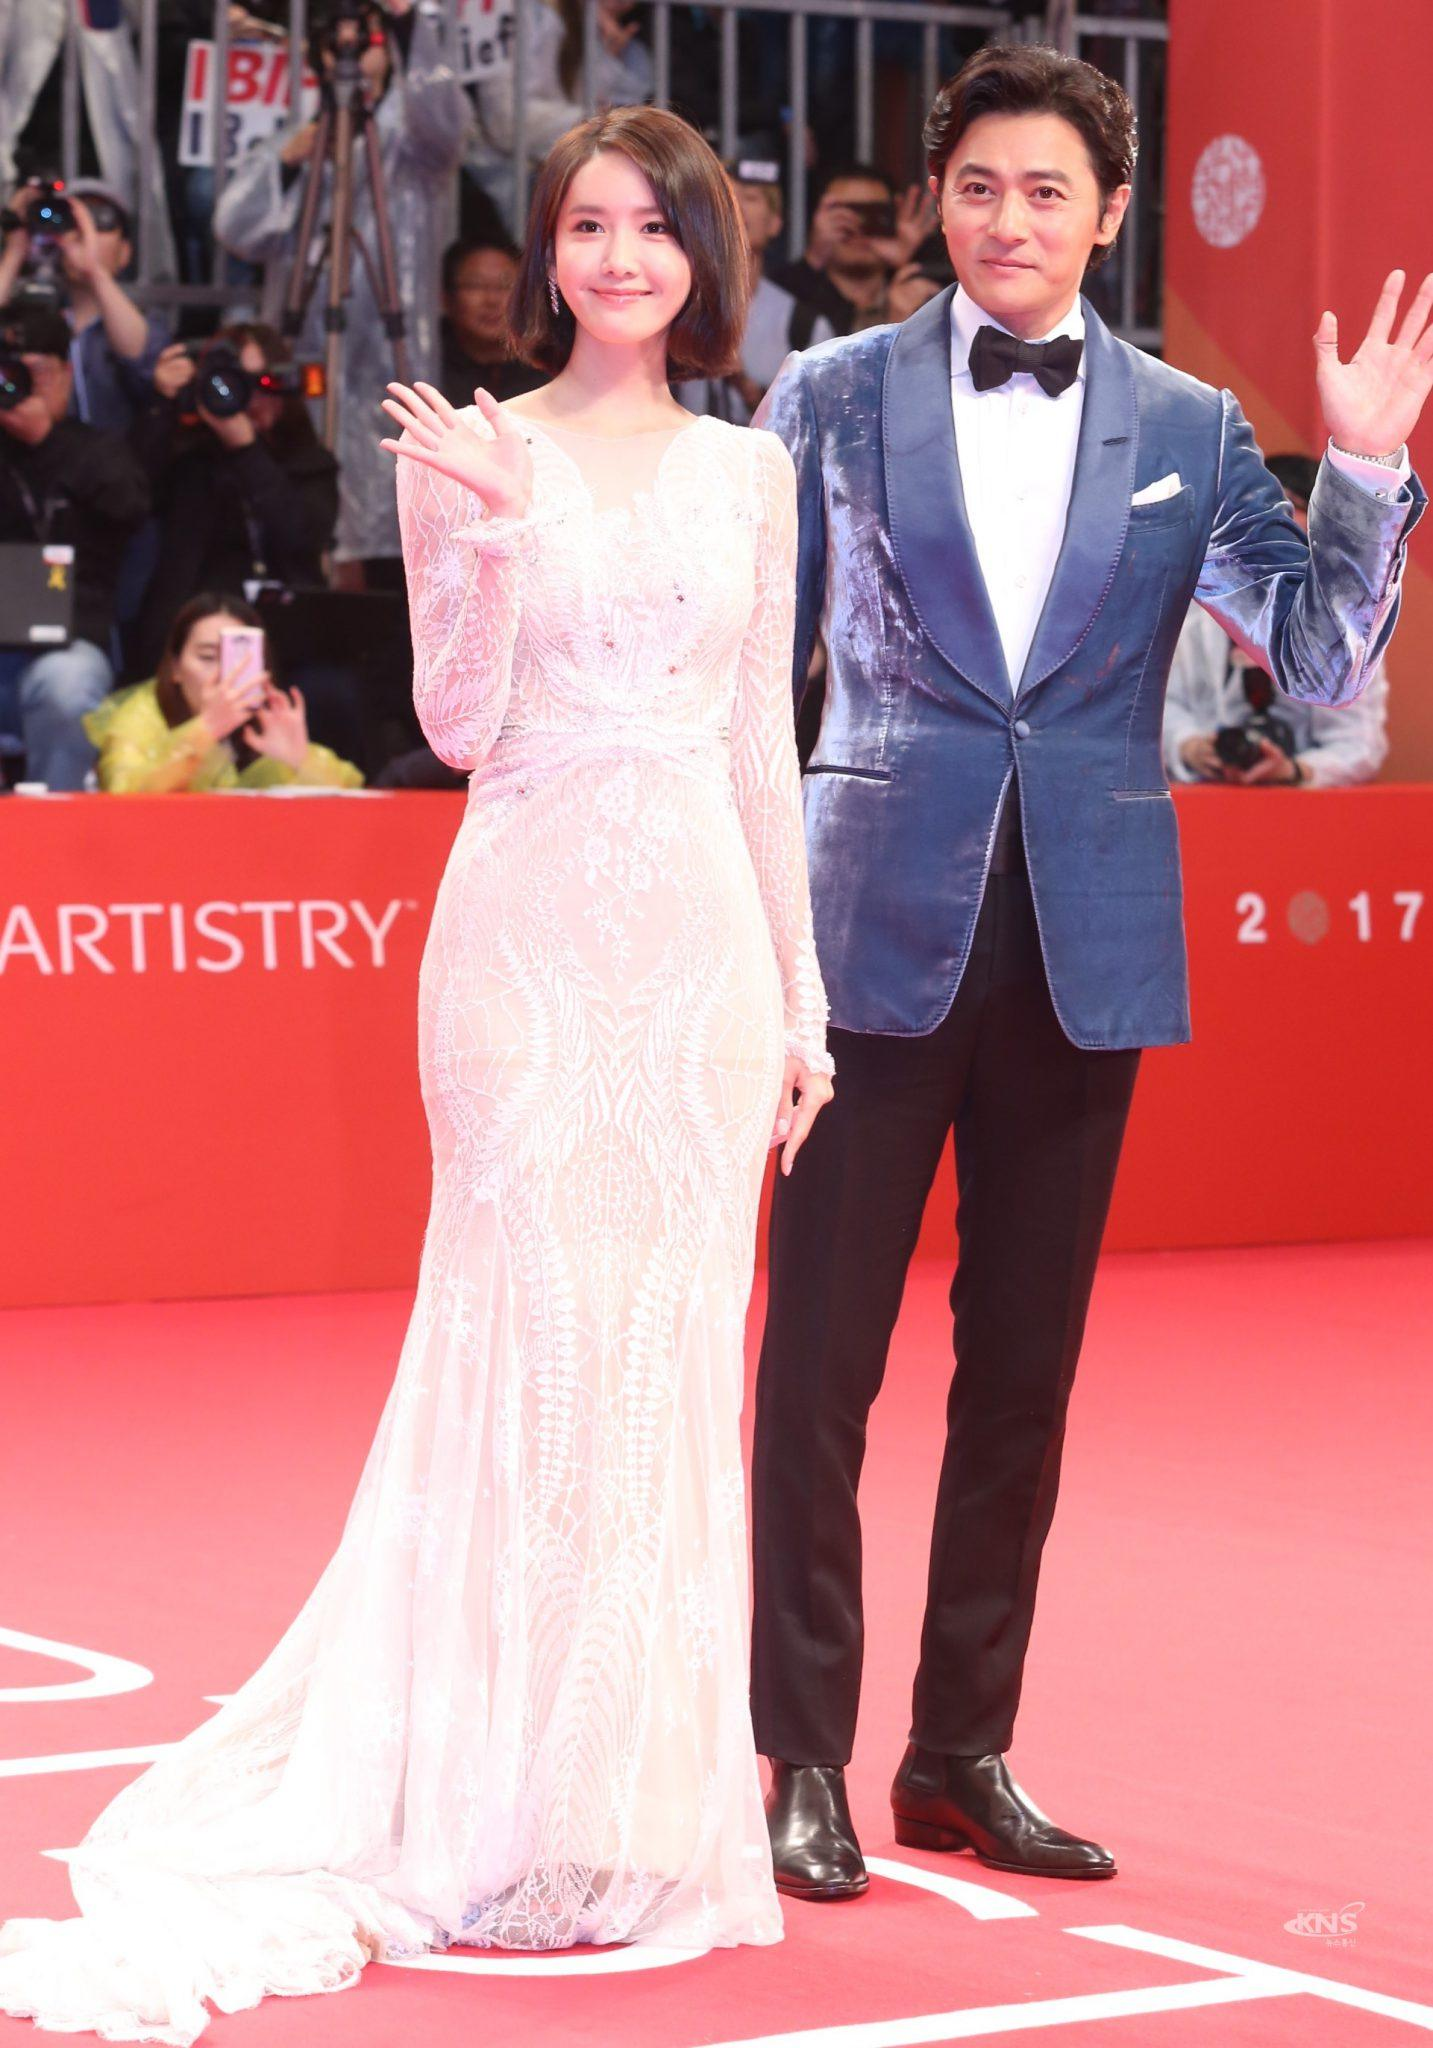 Im Yoona Movie List Amazing yoona's new red carpet dress reveals a clear outline of her butt